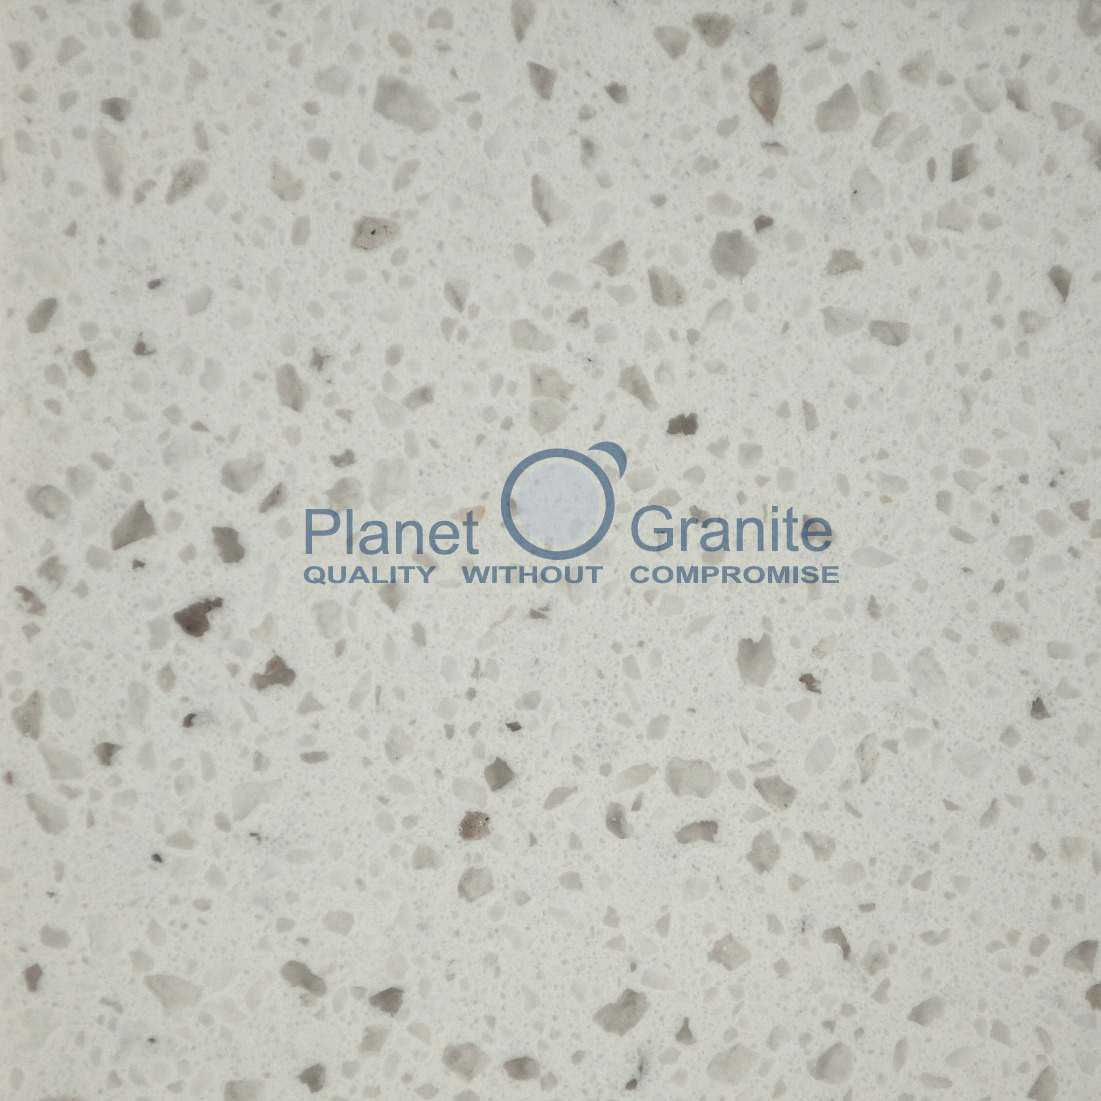 Materials - Ottawa Granite - Planet Granite - Quality